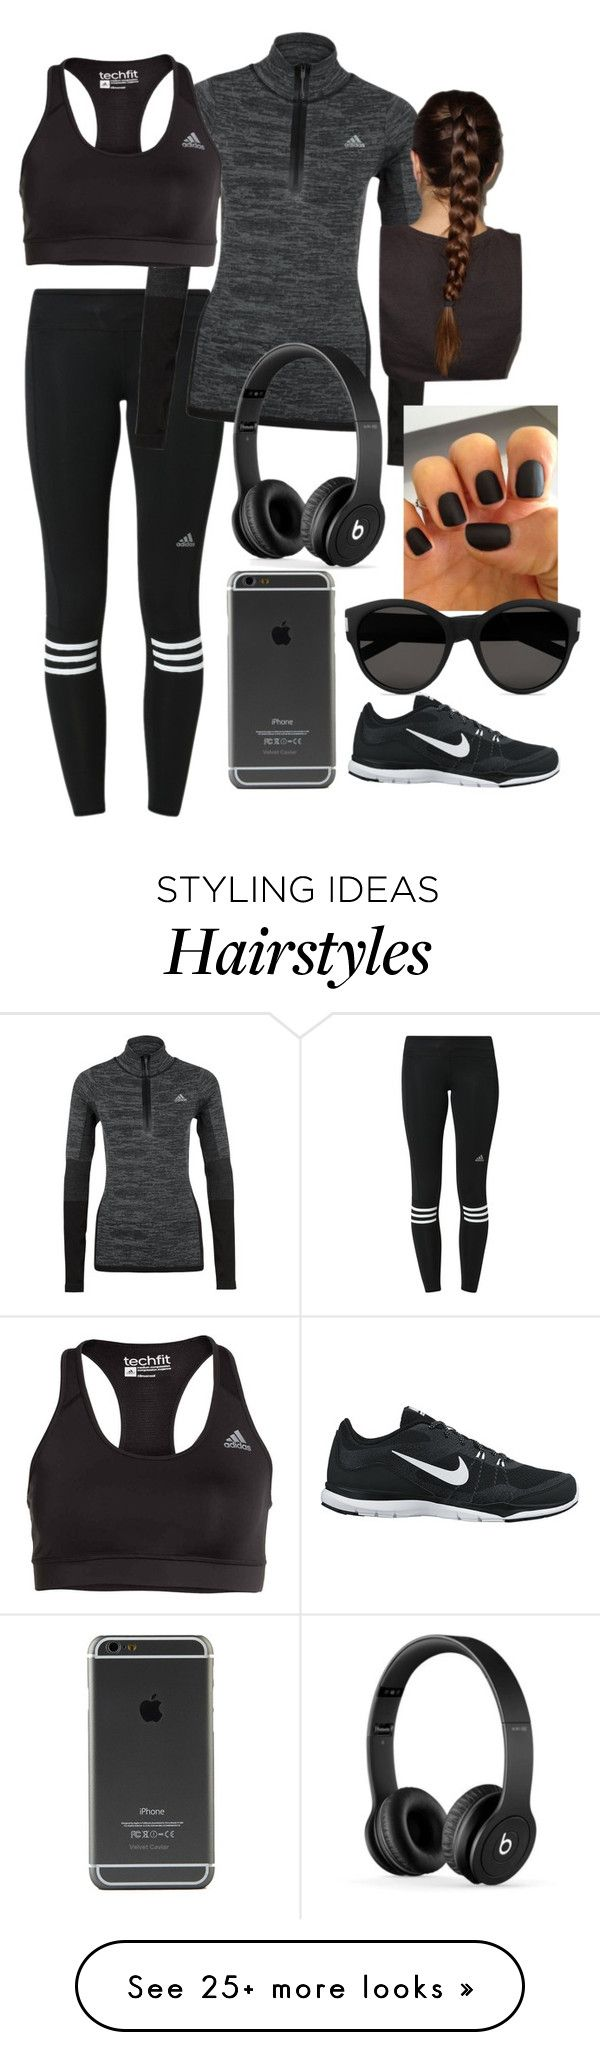 """workout"" by anayaperna on Polyvore featuring adidas, Beats by Dr. Dre, NIKE and Yves Saint Laurent"